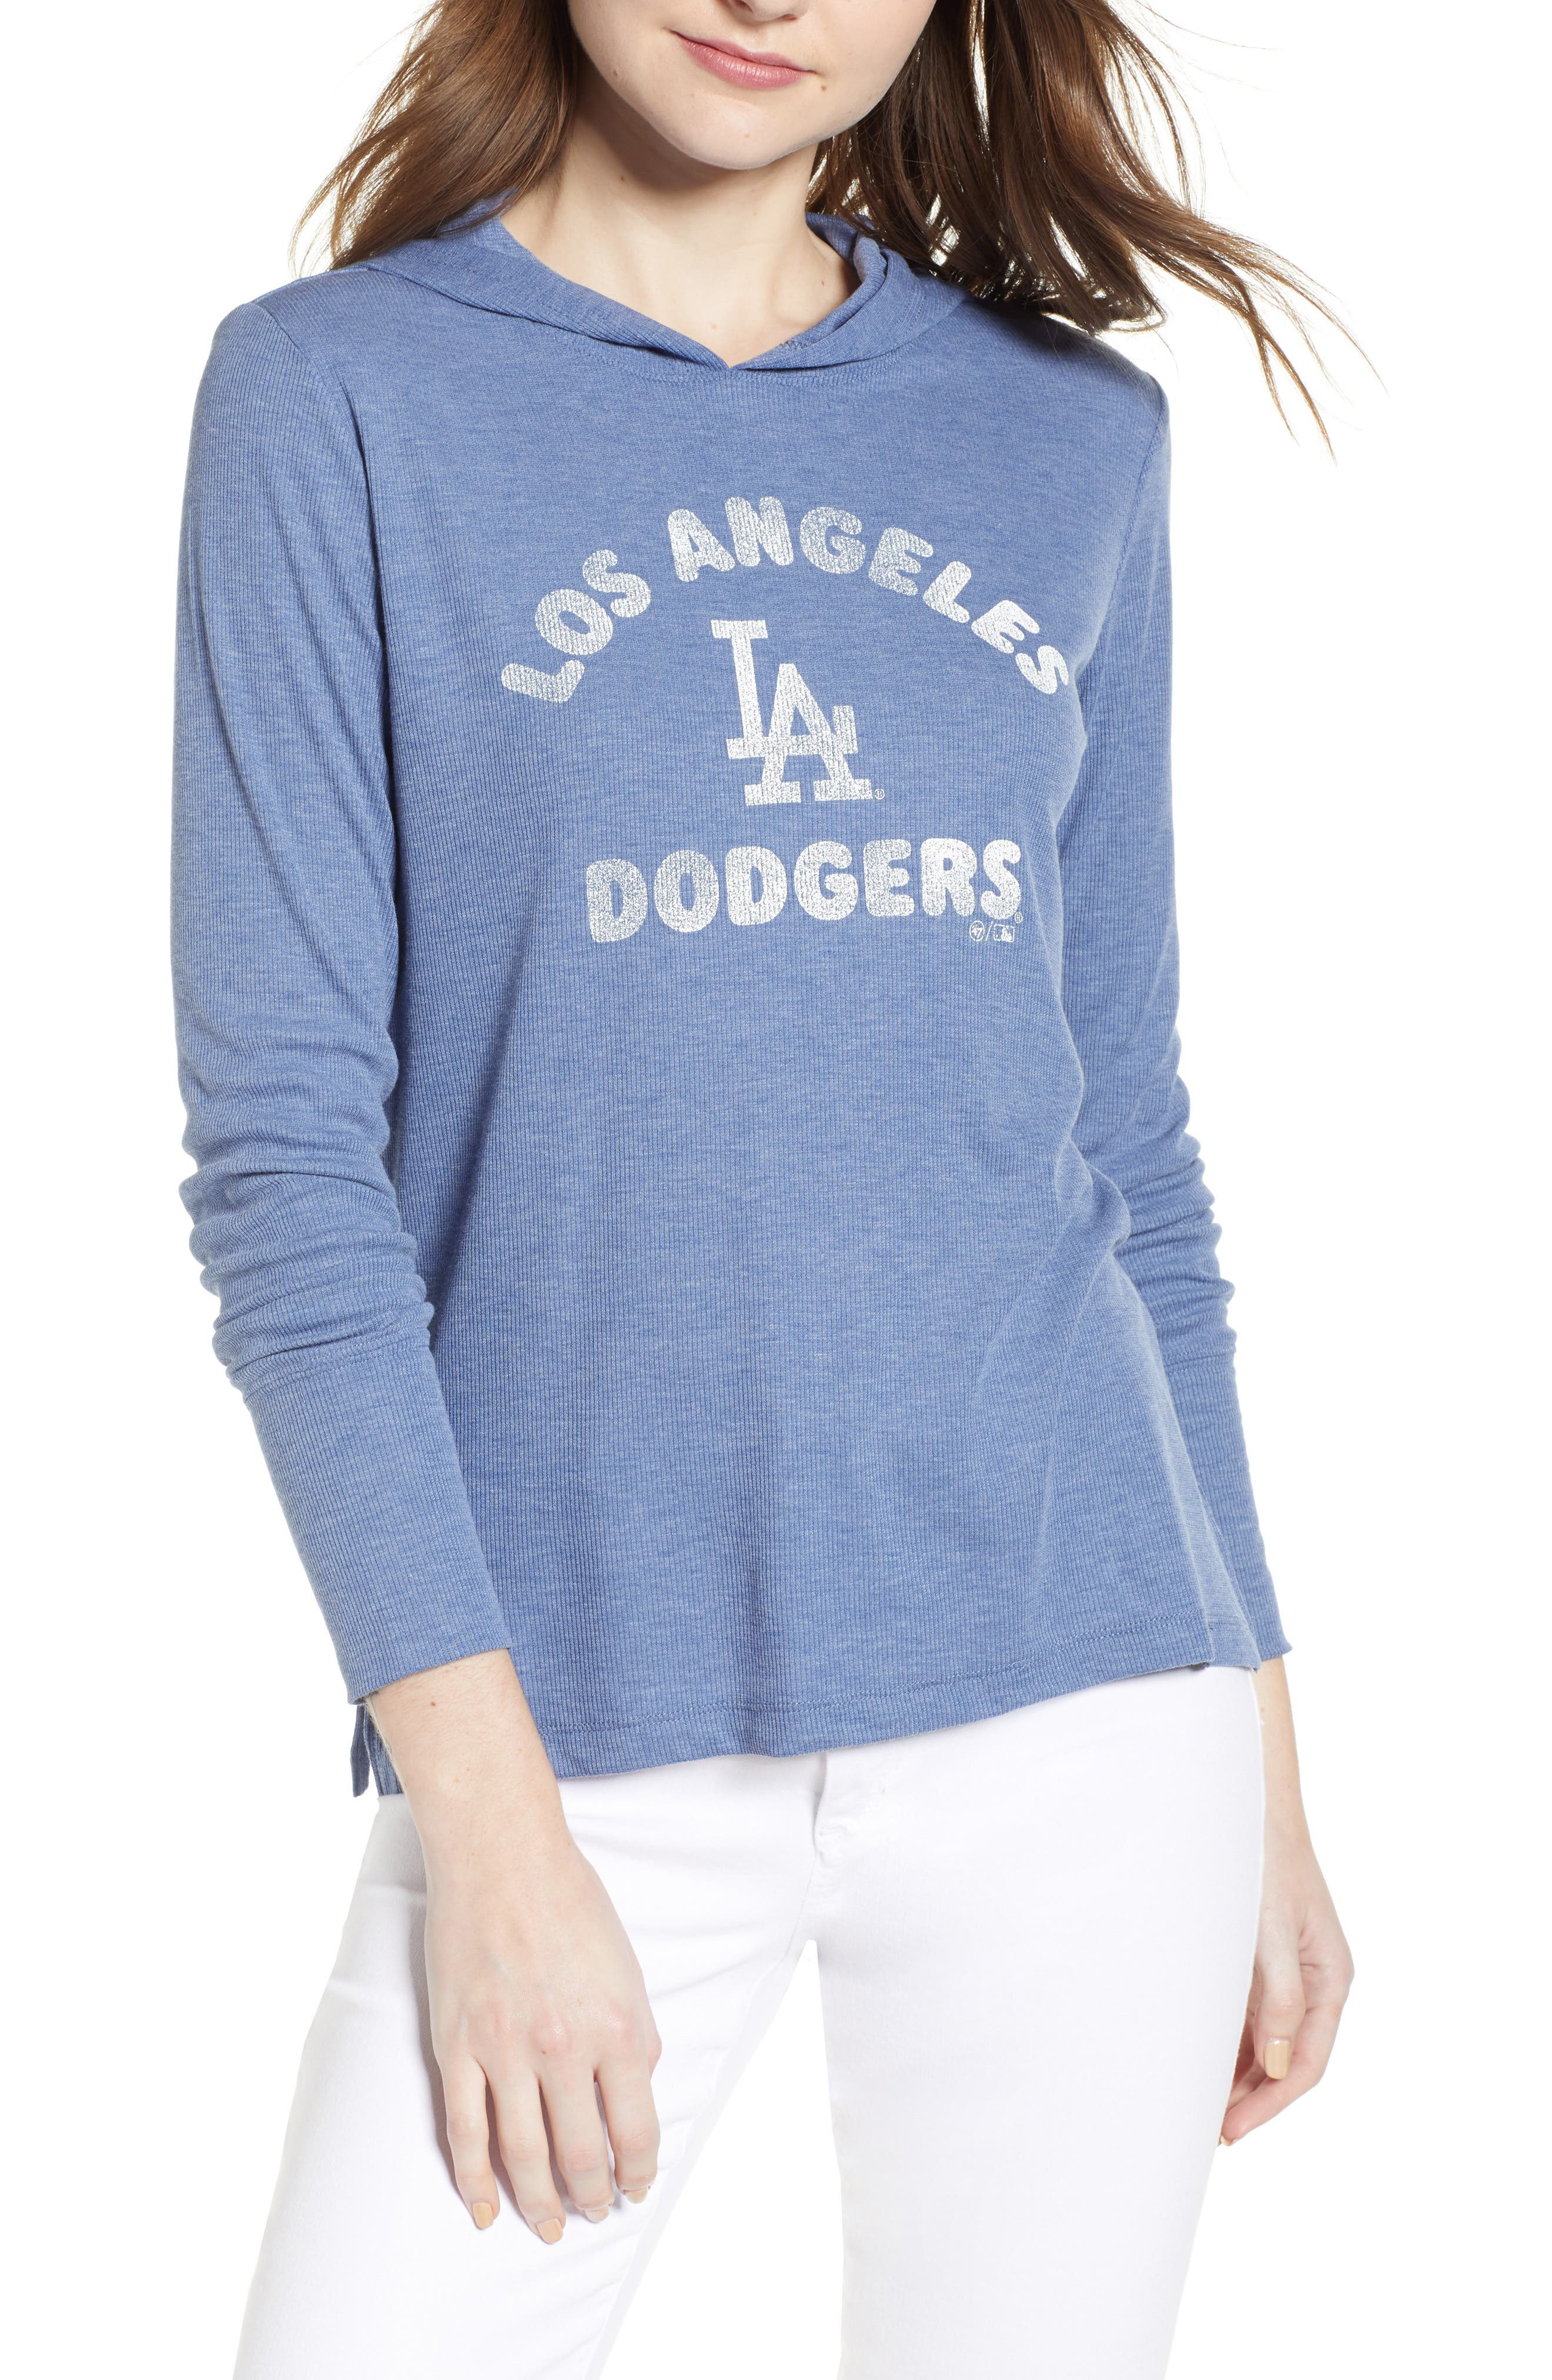 Campbell Los Angeles Dodgers Rib Knit Hooded Top,                         Main,                         color,